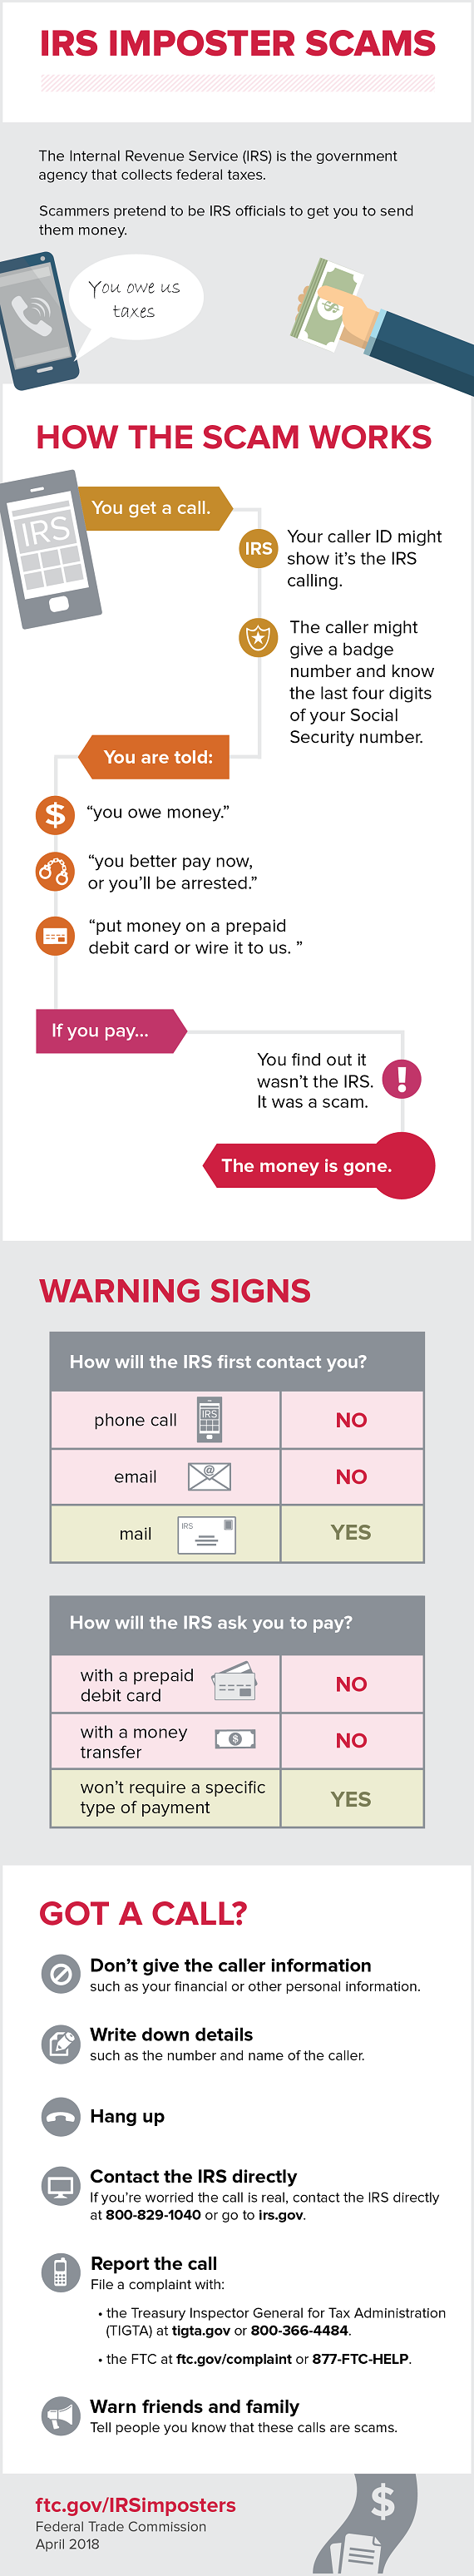 IRS phone scam infographic